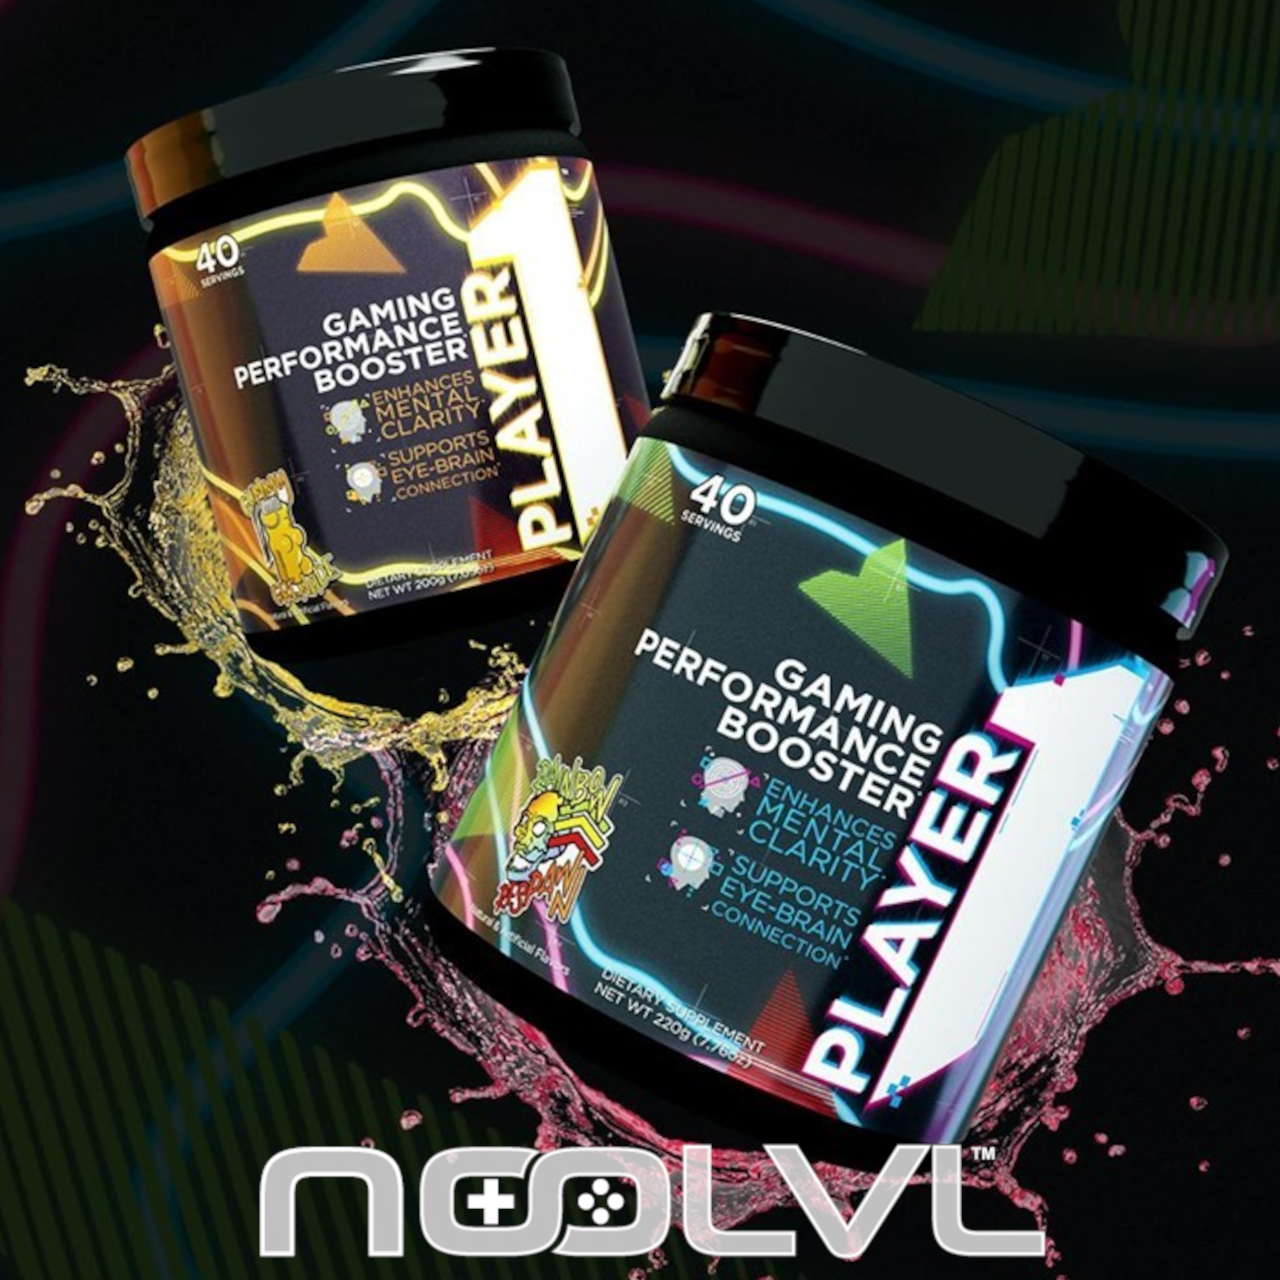 Rule 1 Player1 Boosts Gaming Performance And Rules The Roost Nutrition Branding Supplements Natural Caffeine